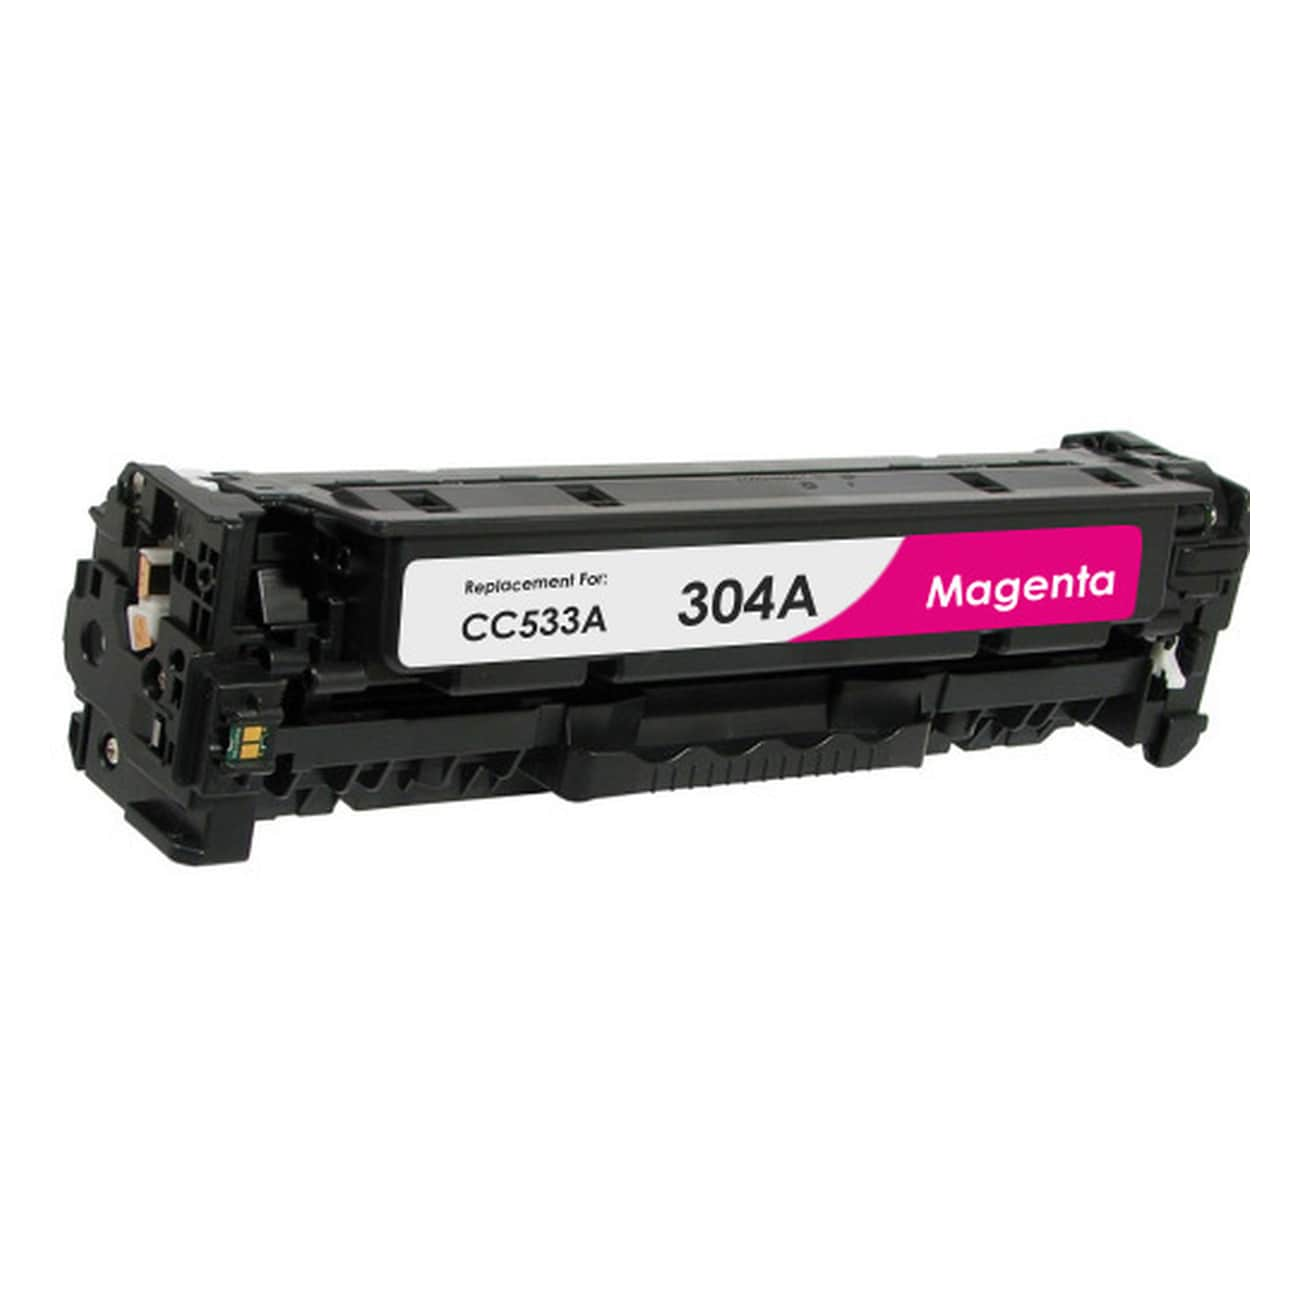 CC533A Toner Cartridge - HP Remanufactured (Magenta)